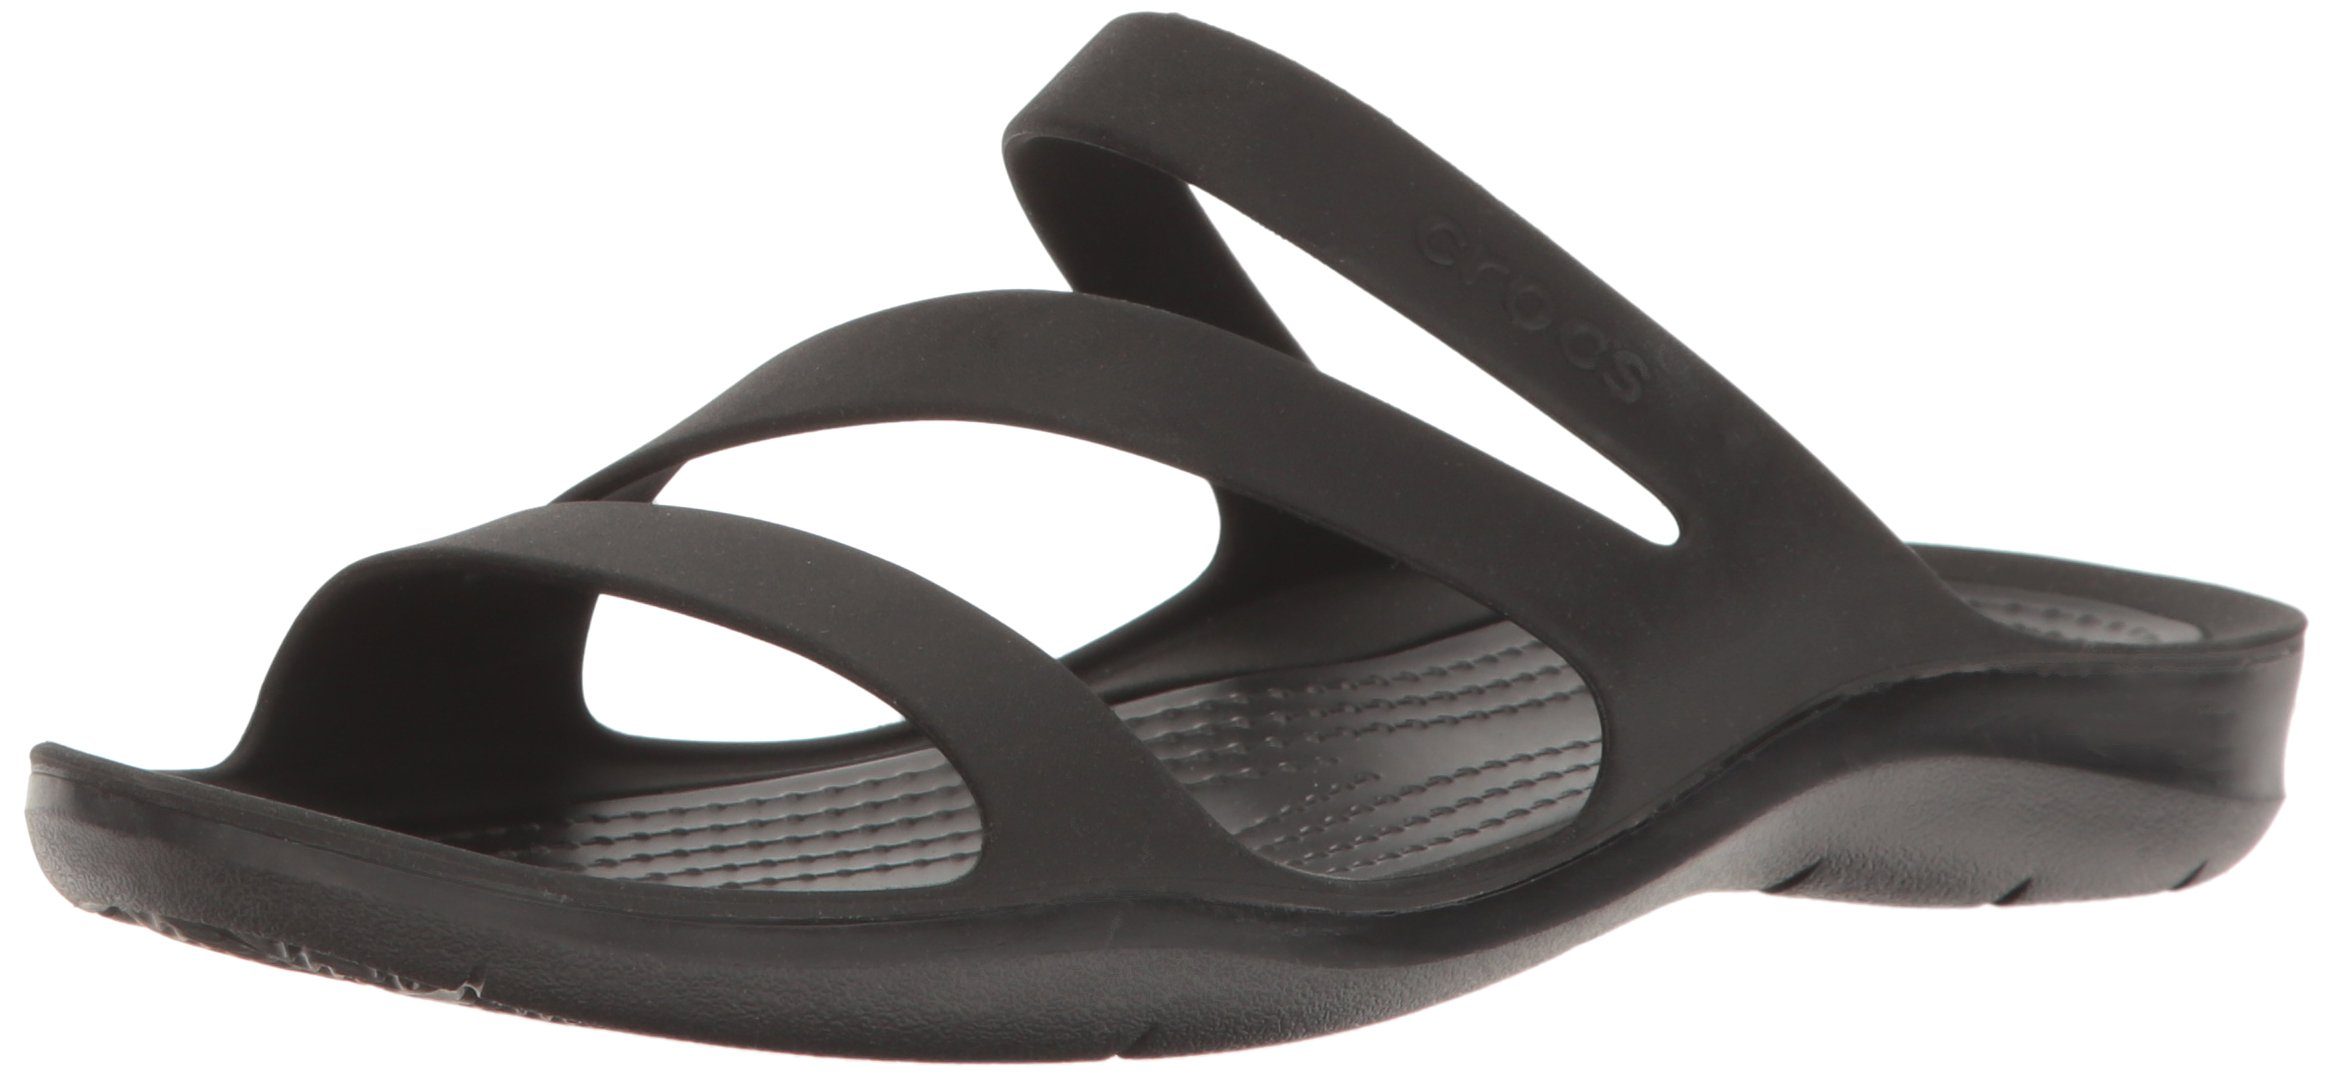 Crocs Women's Swiftwater Sandal, Black/Black, 8 M US